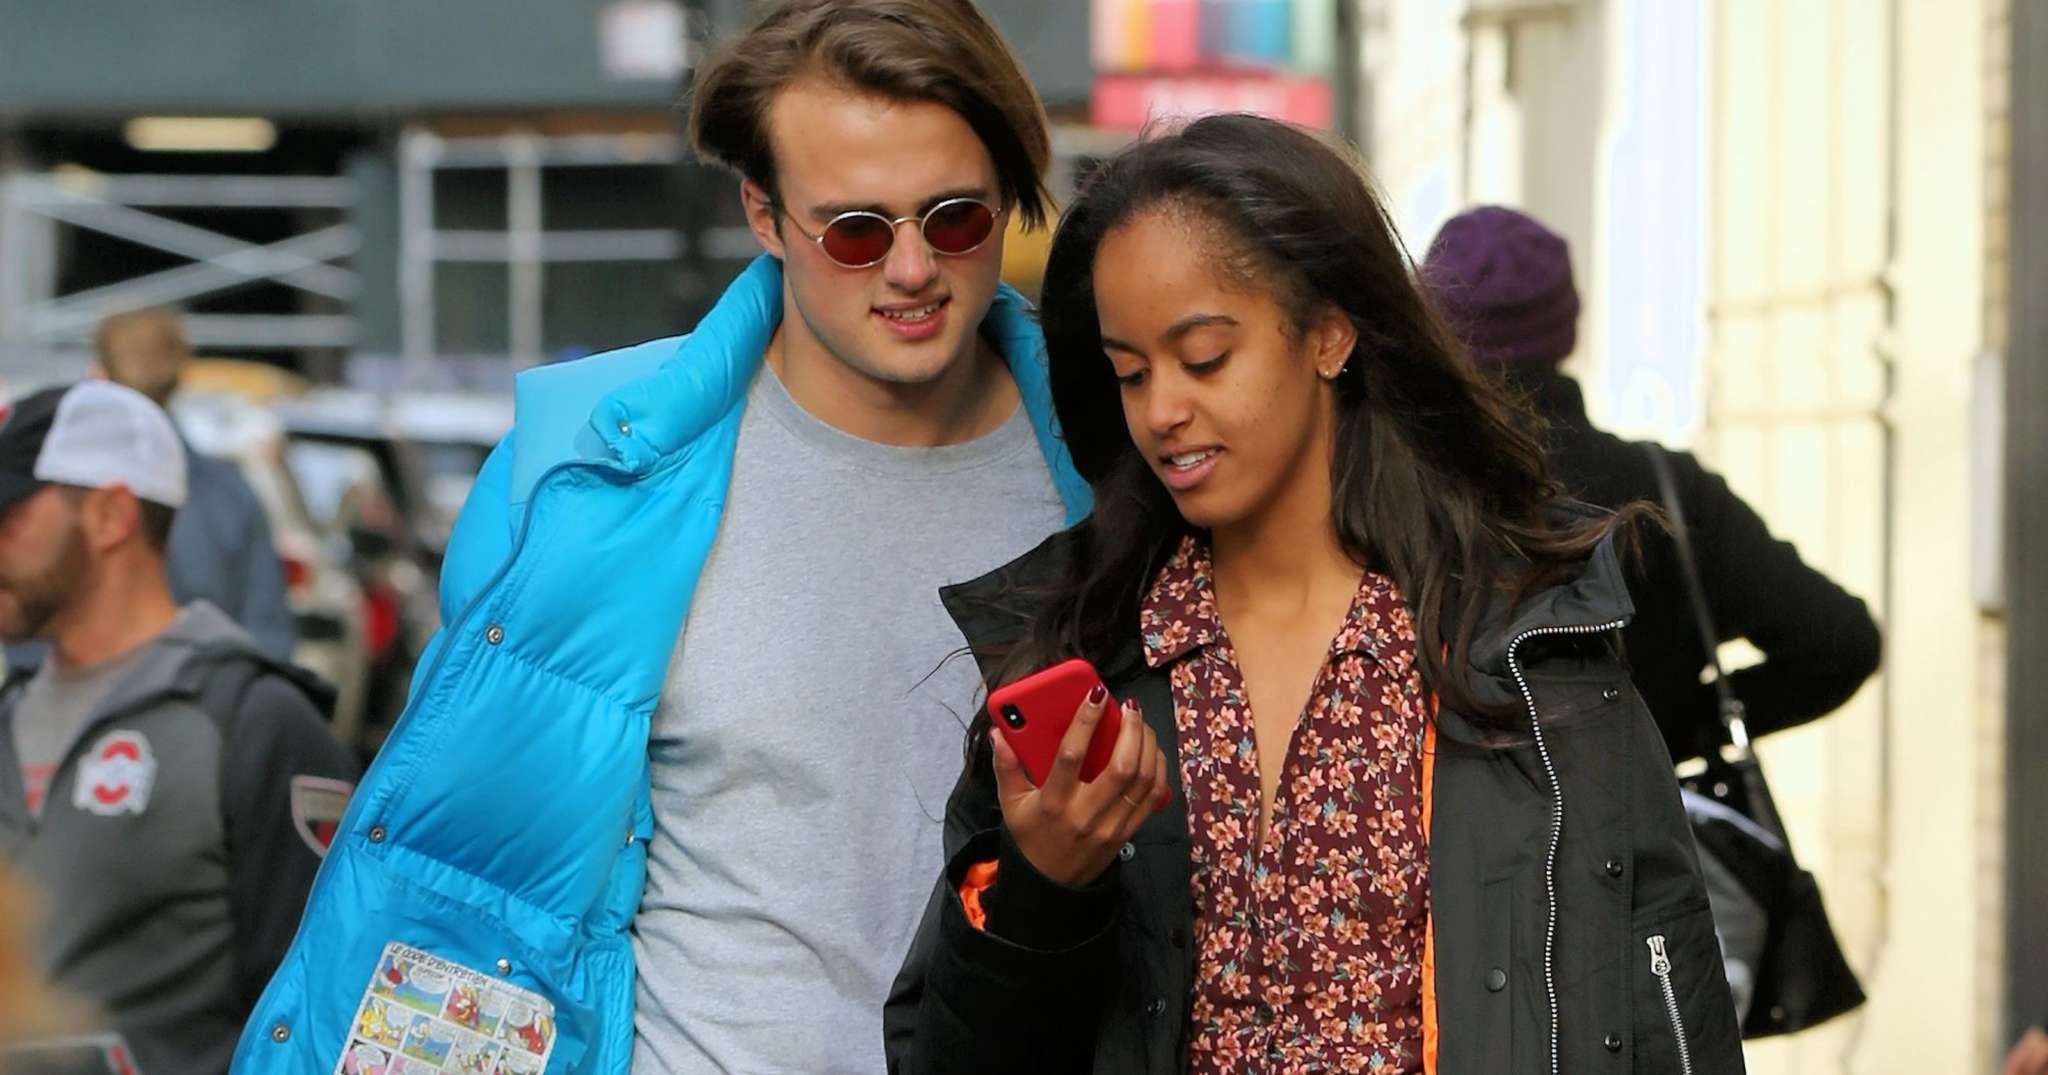 malia-obama-is-spotted-with-her-boo-in-los-angeles-some-fans-hate-that-shes-smoking-see-the-pics